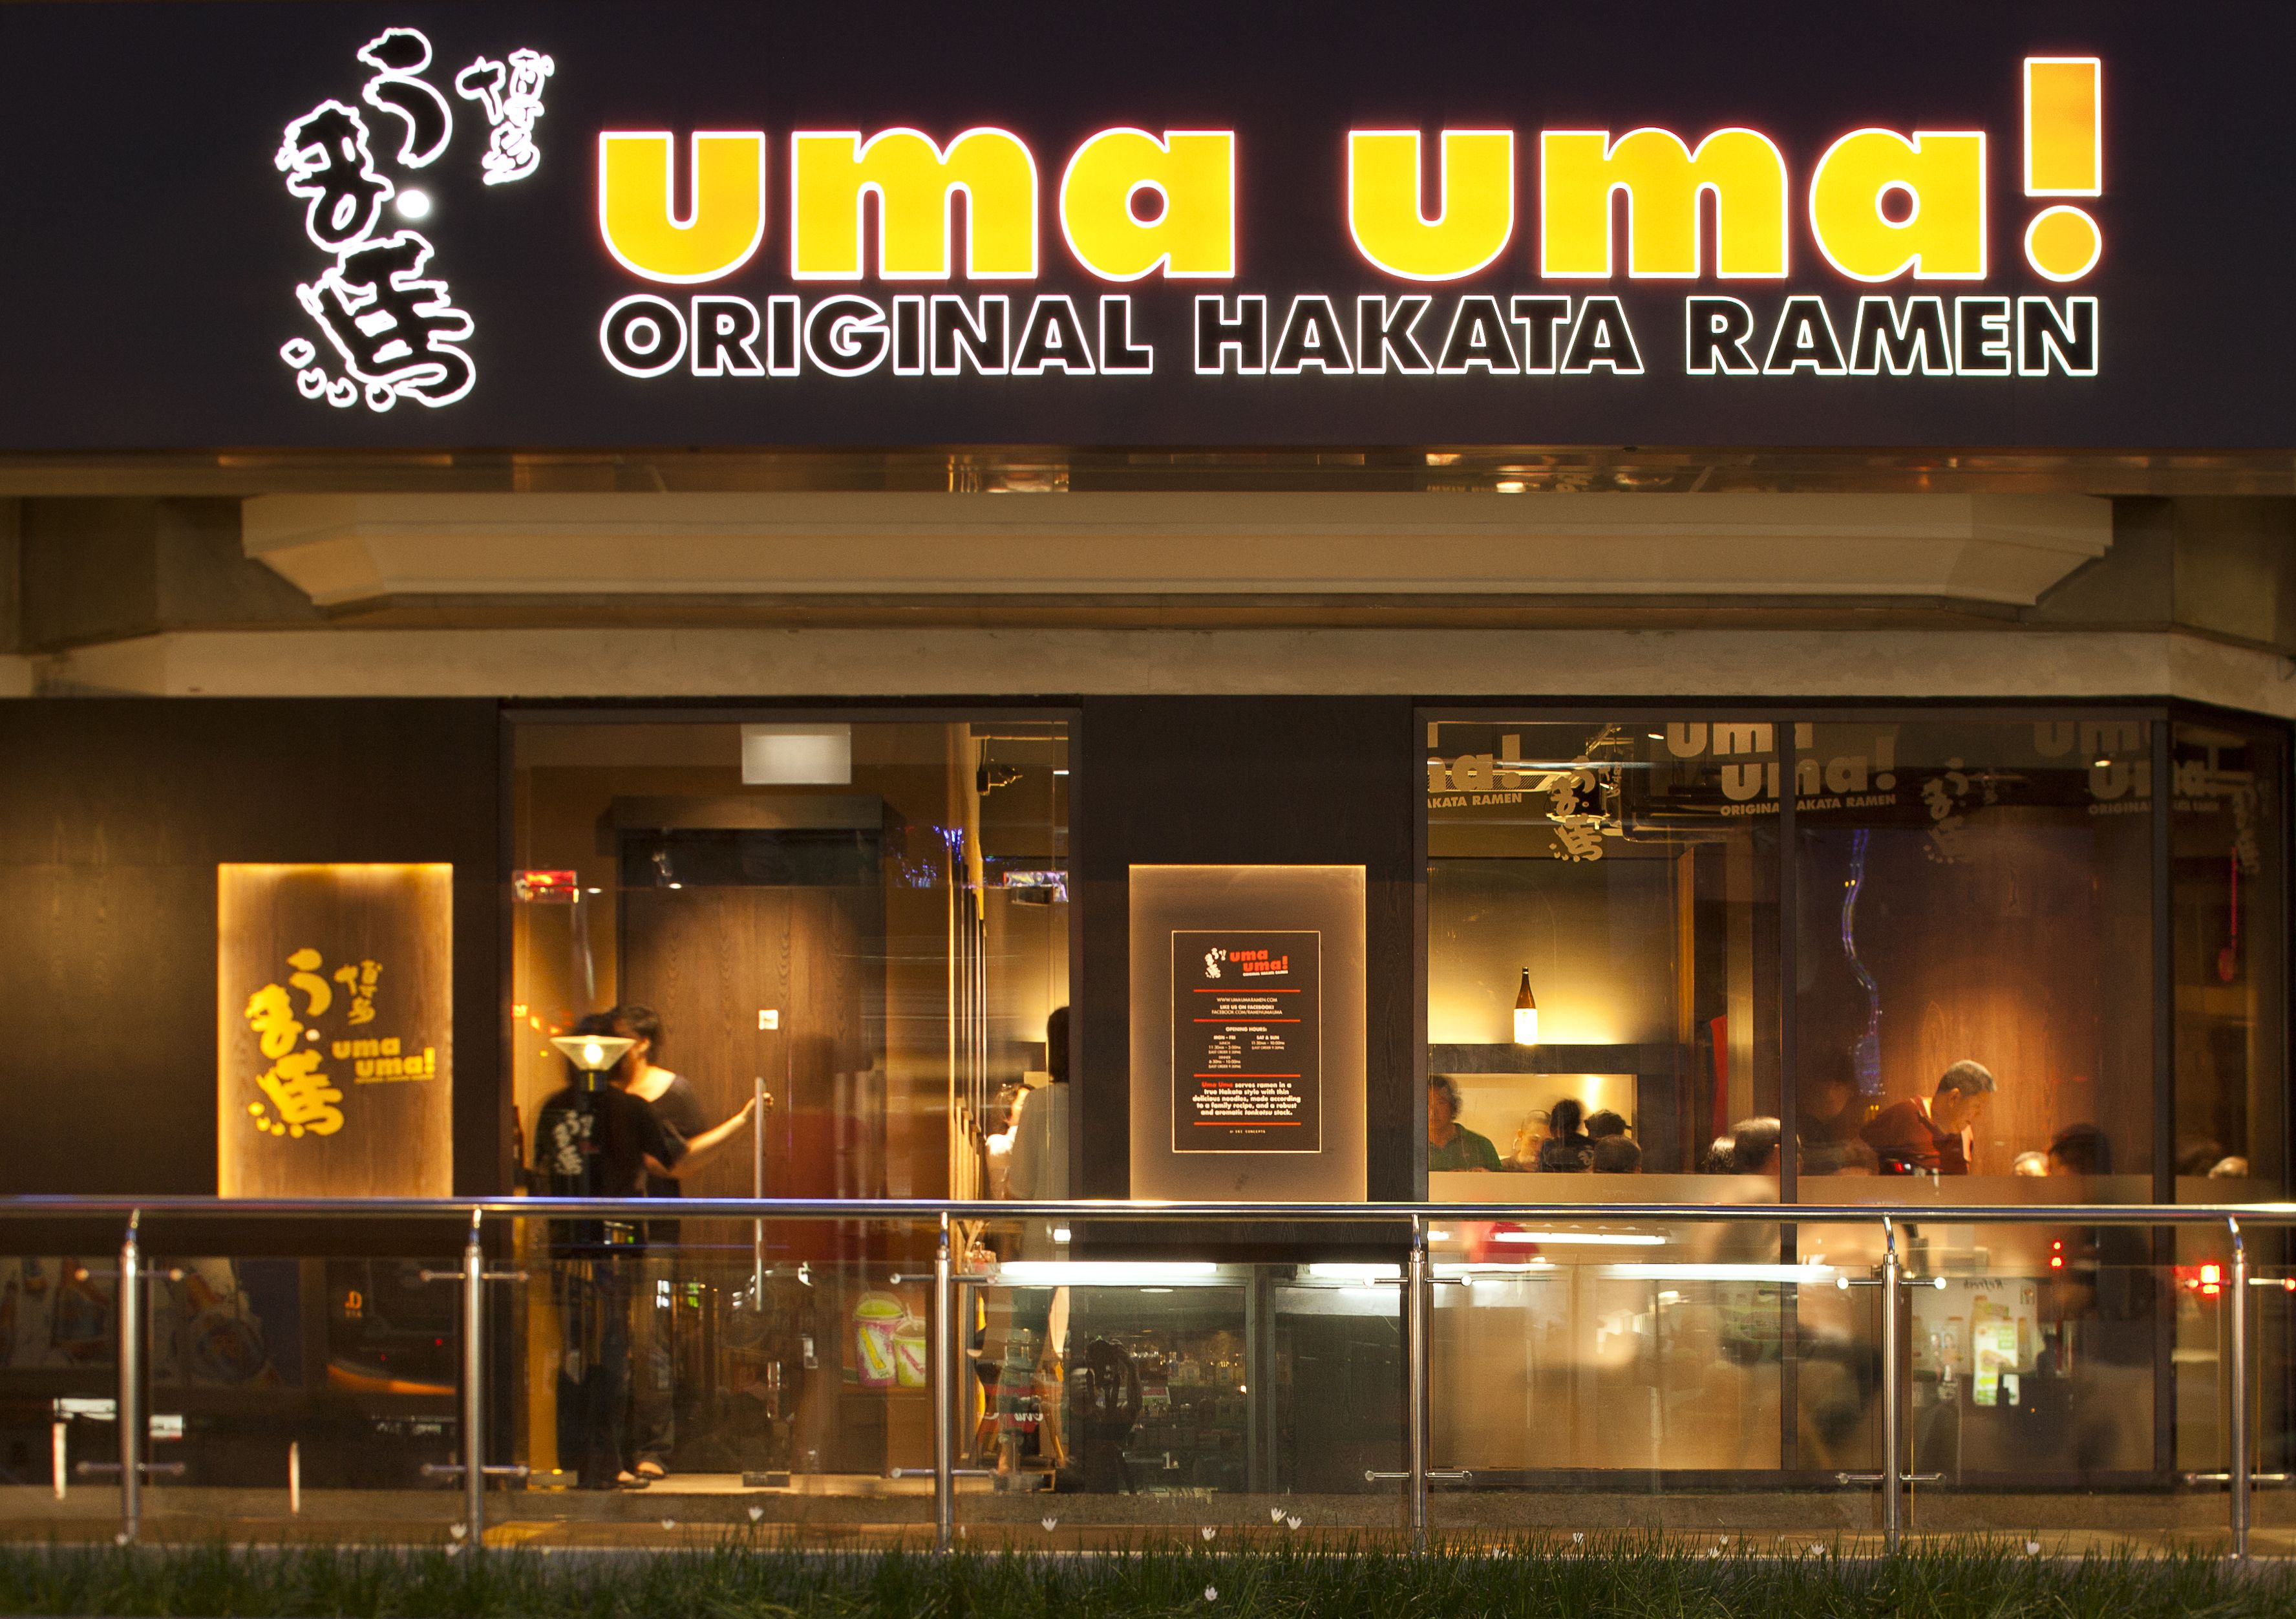 Uma Uma Ramen at Forum The Shopping Mall (Exterior)